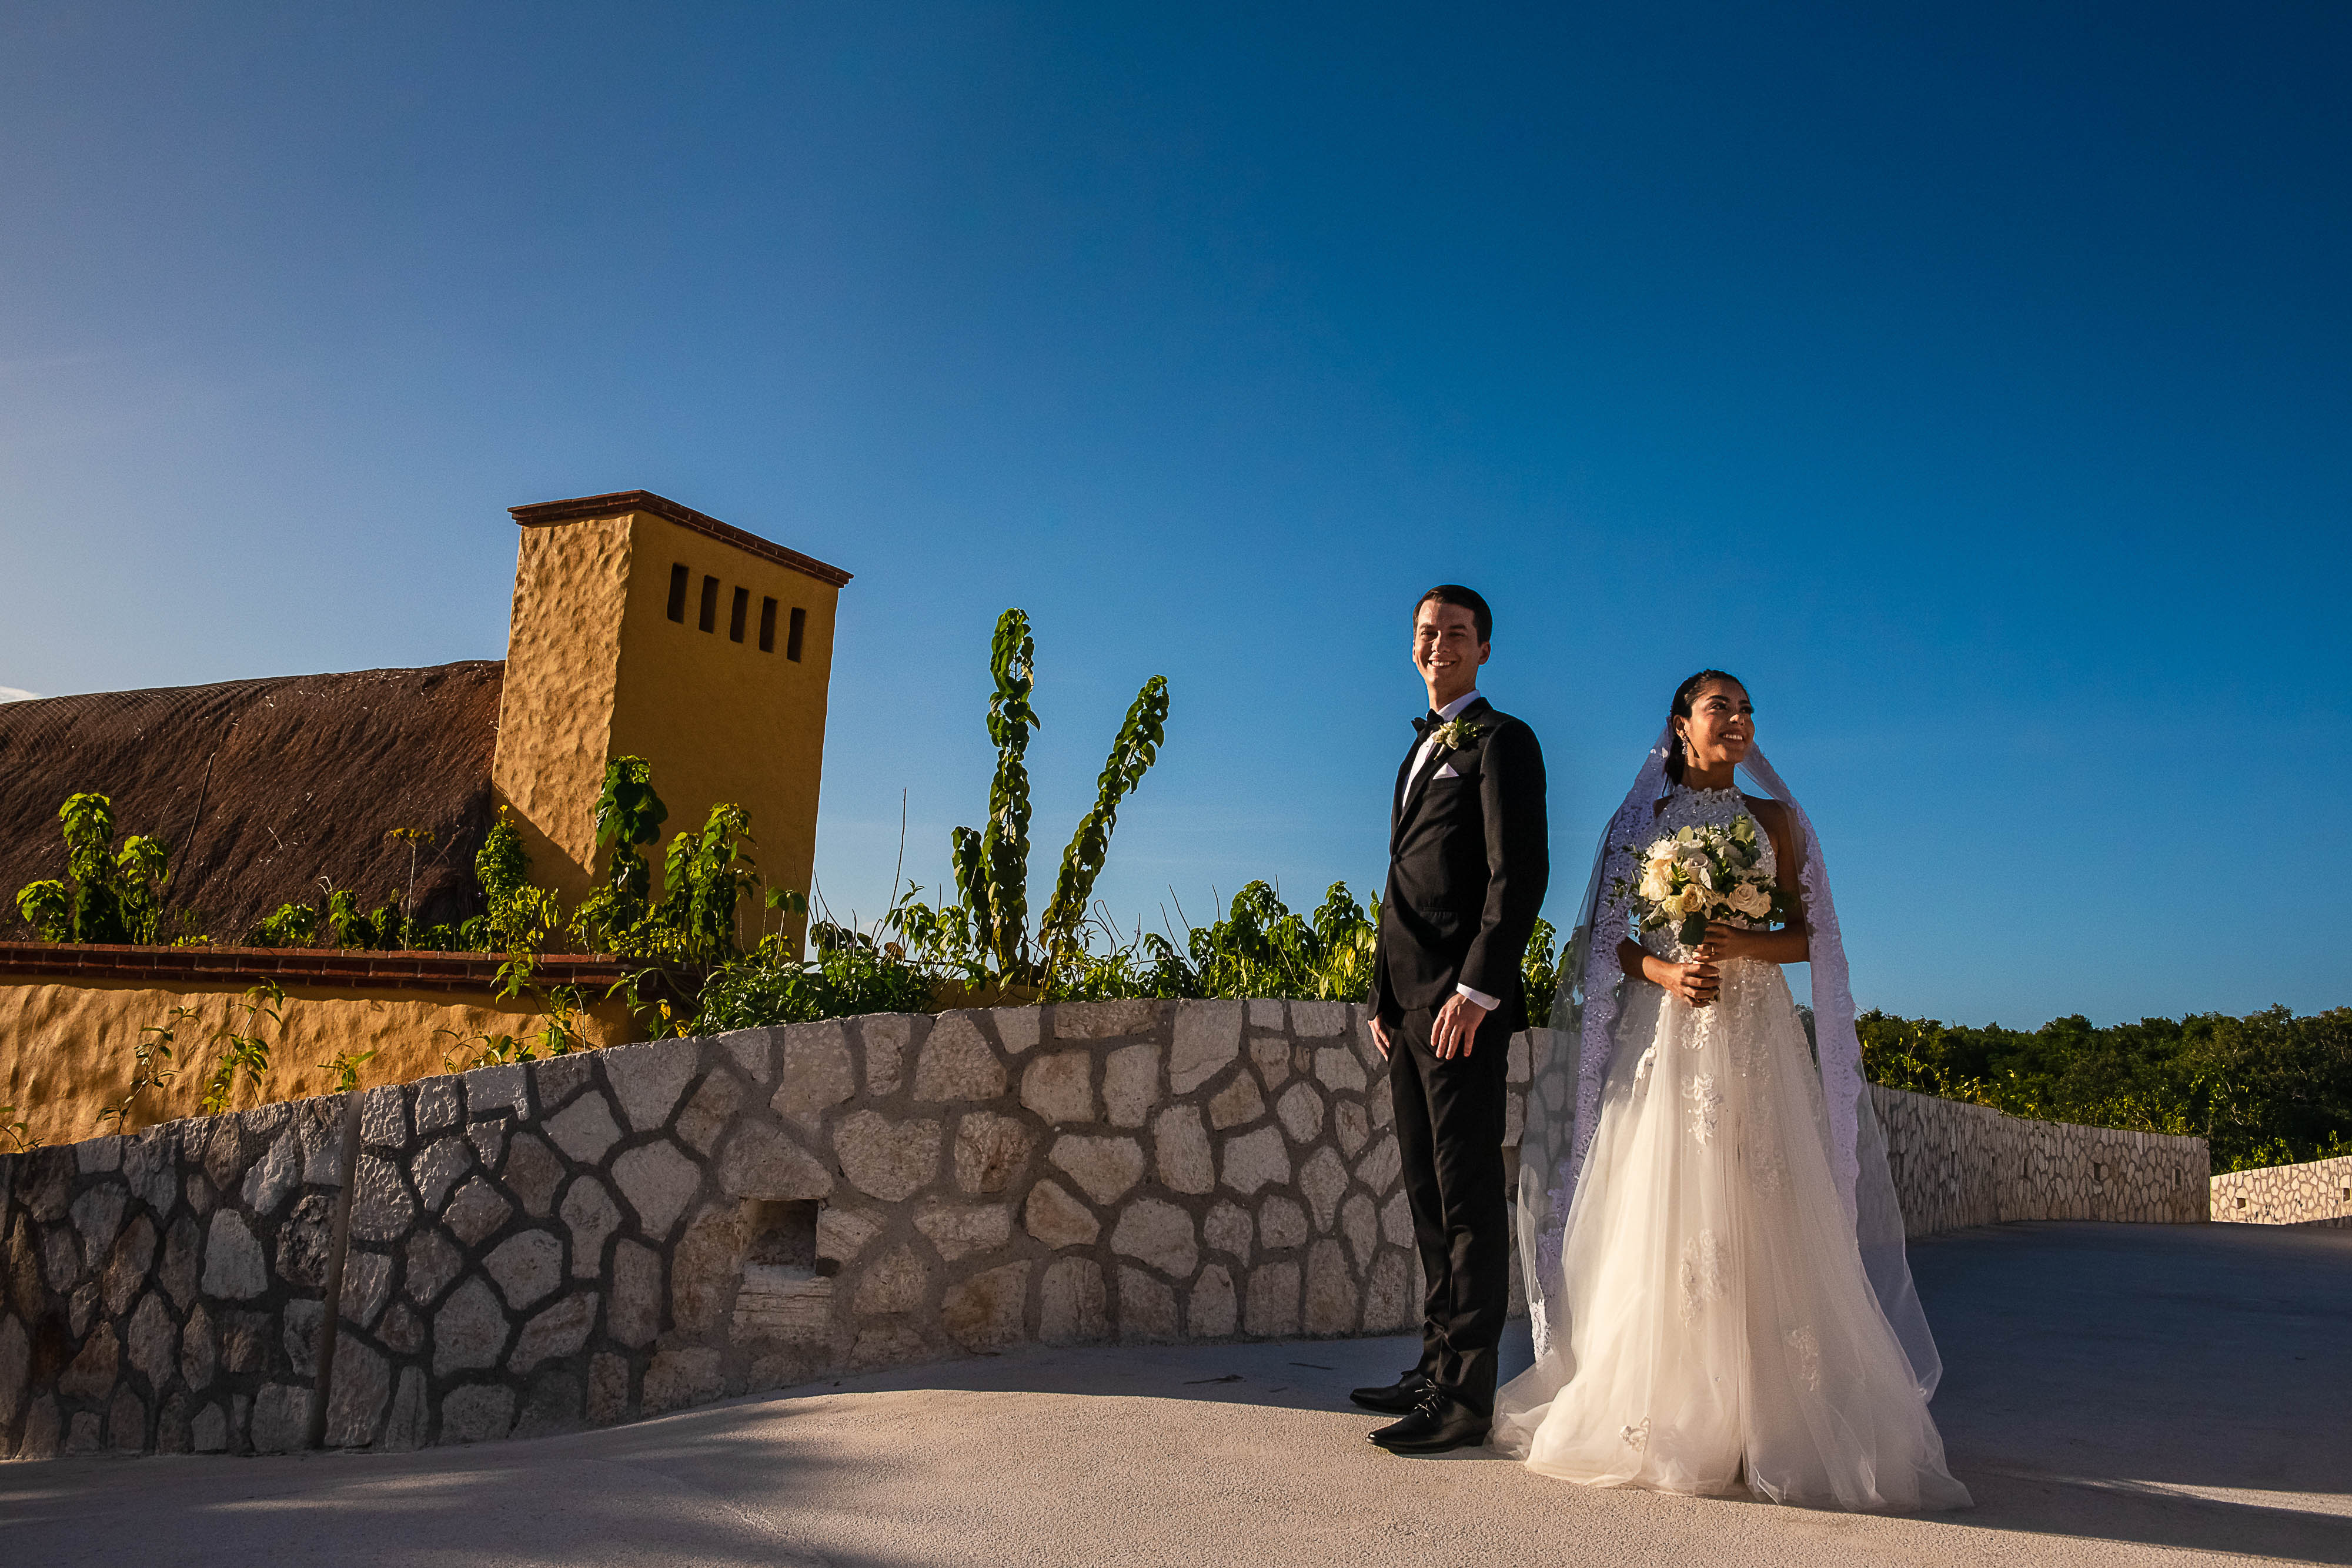 the couple session before the ceremony in xoximilco chapel cancun